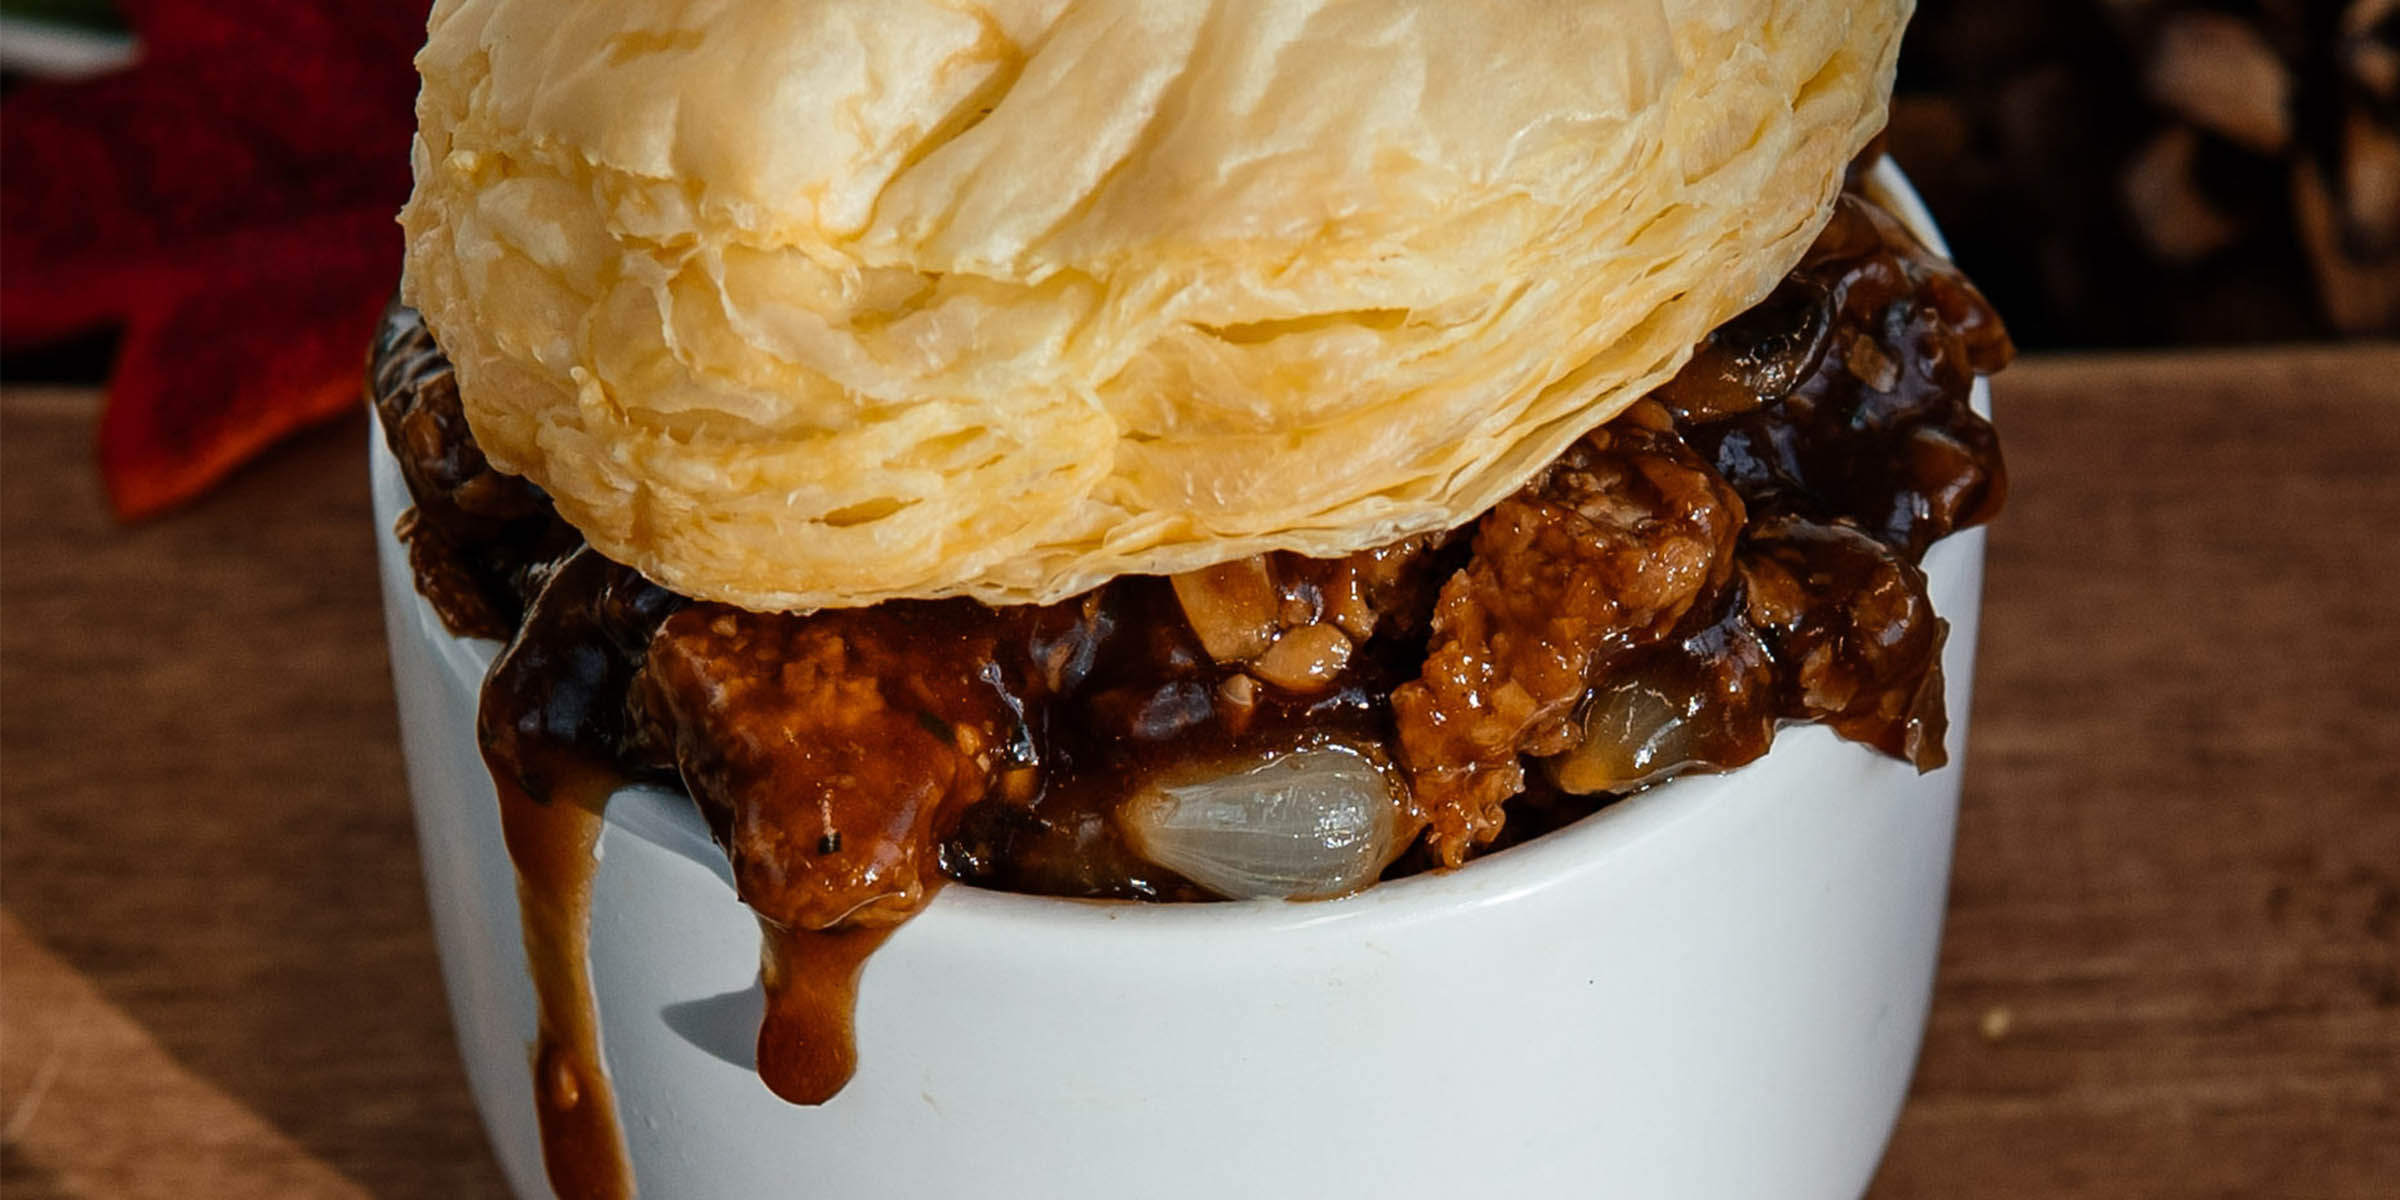 Meatless burger, mushroom and onion in gravy with a pastry top